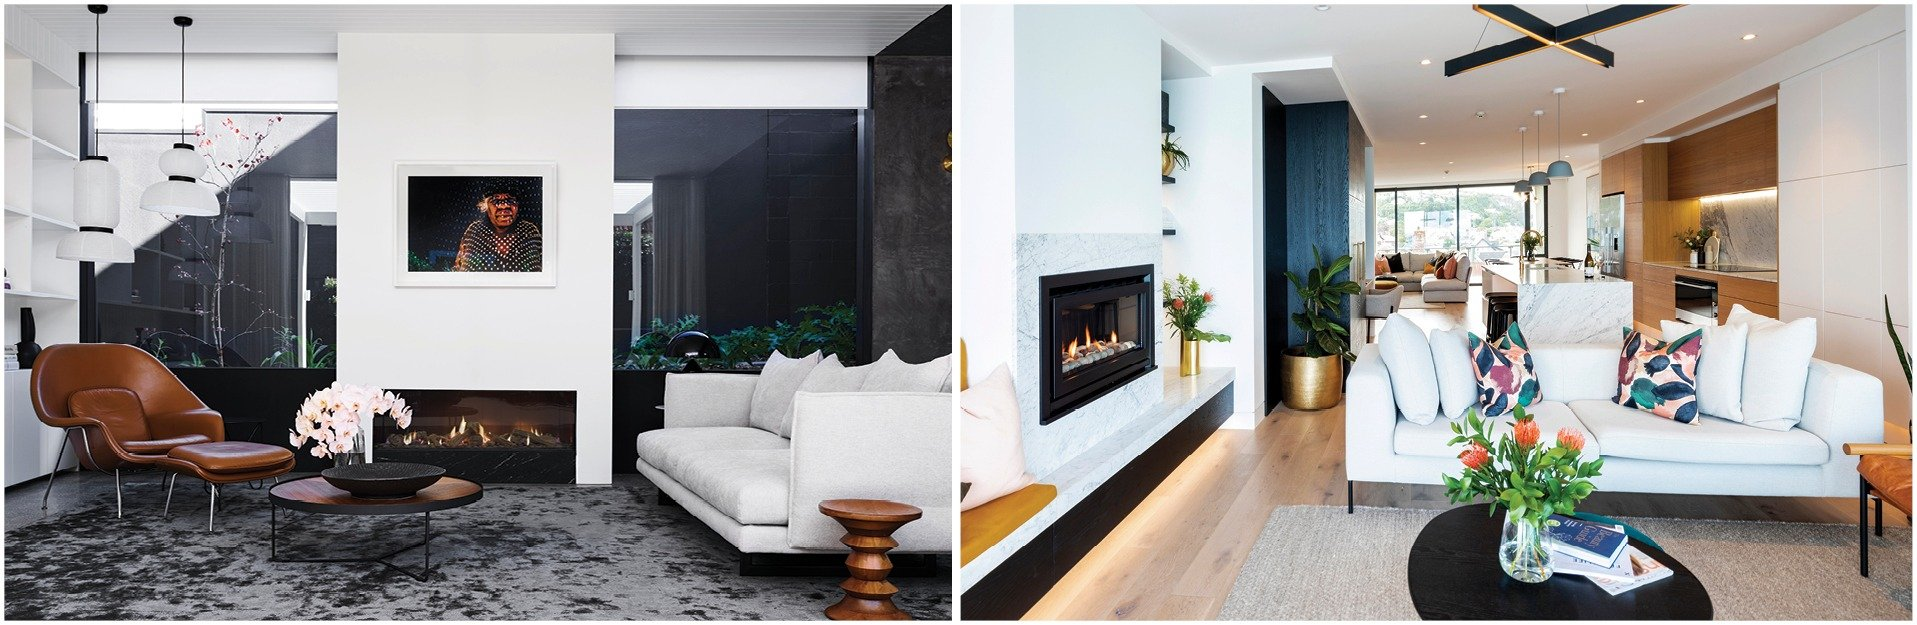 5 ways to position your fireplace and furniture together escea gas fireplaces3